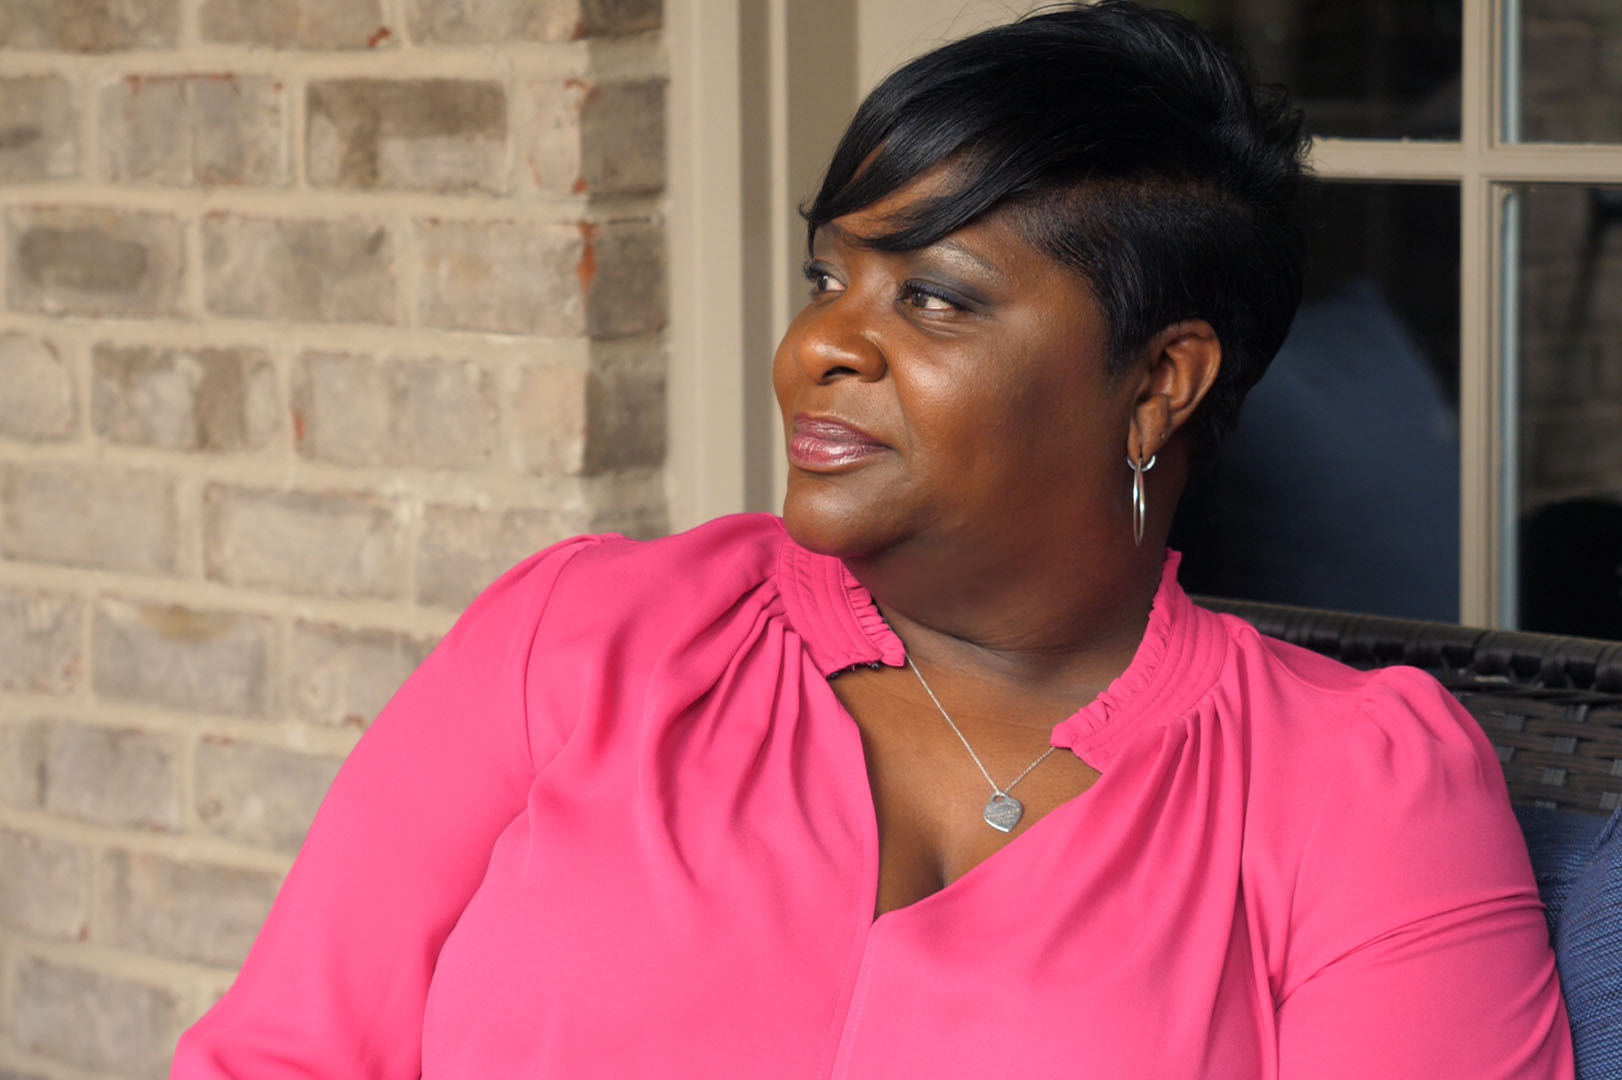 Latonya Drumwright - With cancer now in her past thanks to the specialized care she received through Vanderbilt Health, Latonya is an advocate for breast cancer screenings in her community.